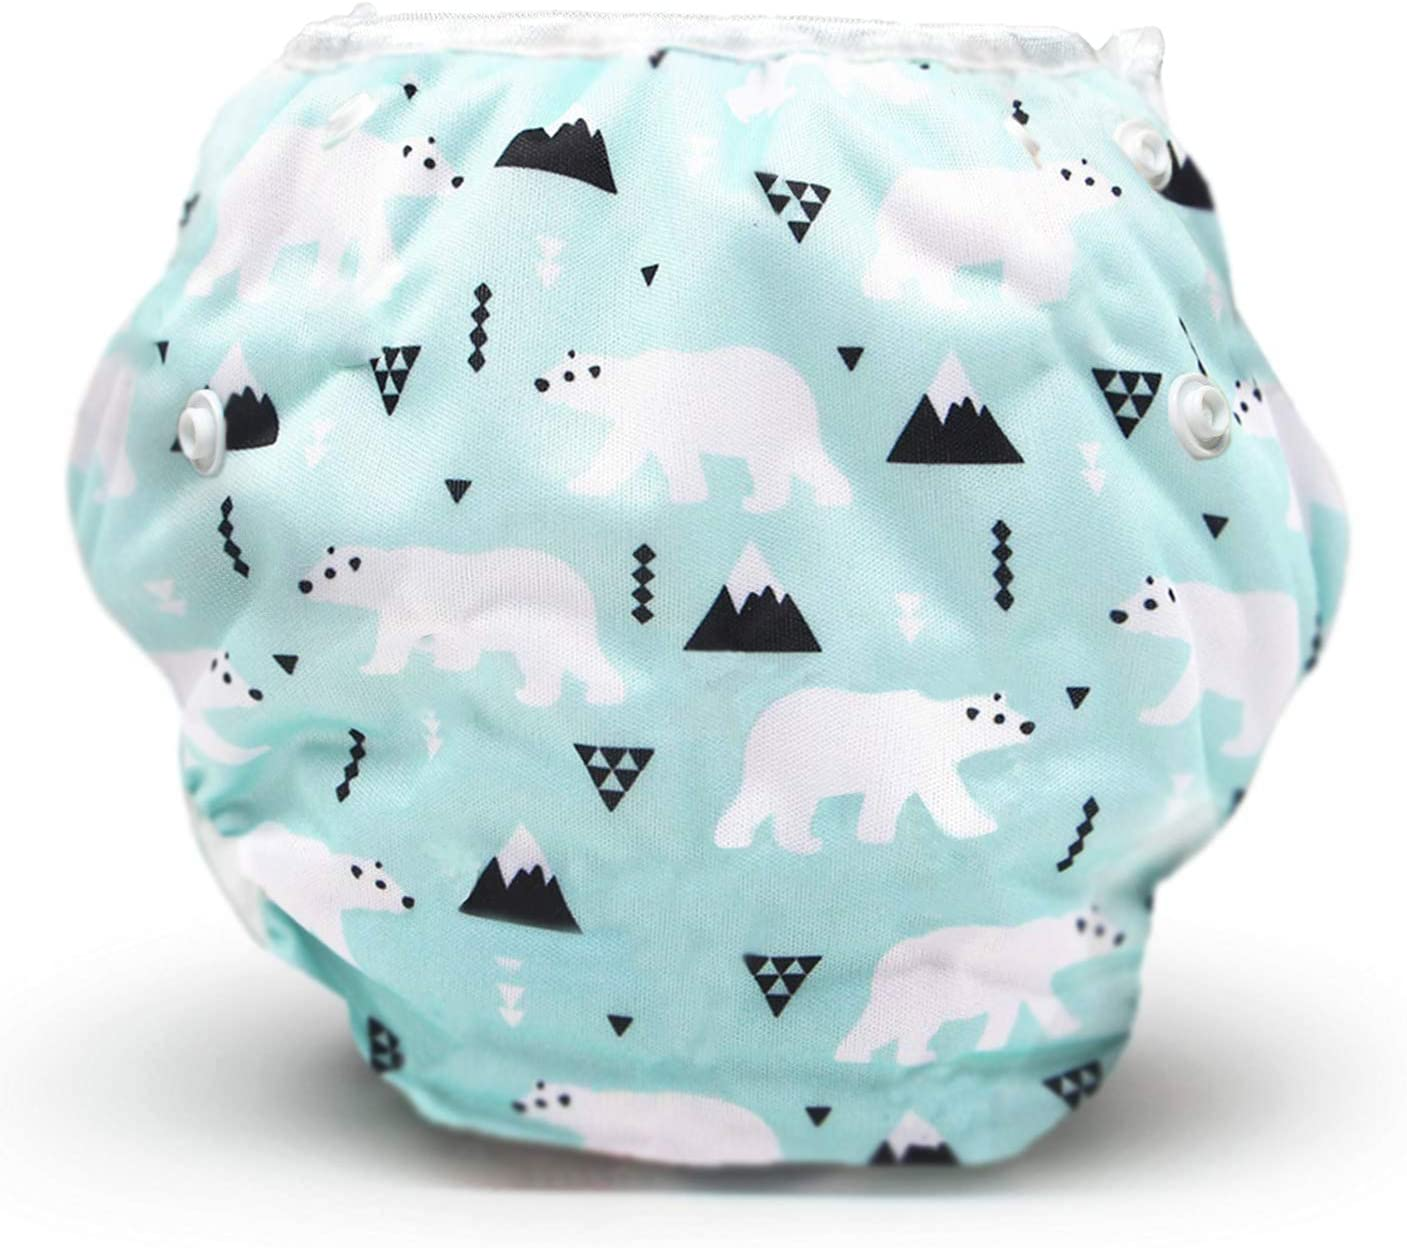 Storeofbaby Reusable Swim Nappies for Unisex Baby Adjustable Swimming Pants 0-3 Years